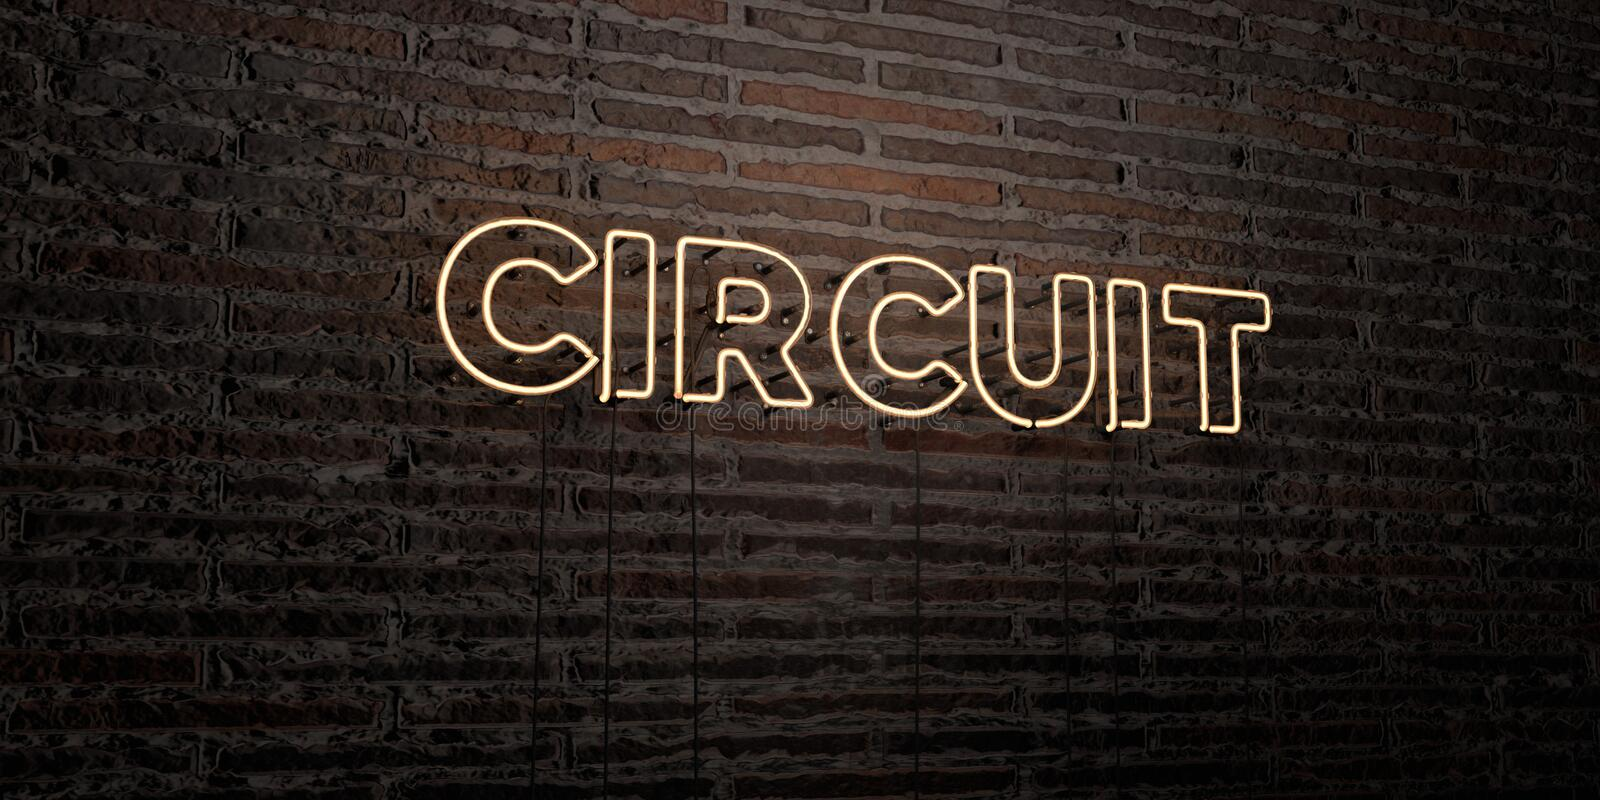 CIRCUIT -Realistic Neon Sign on Brick Wall background - 3D rendered royalty free stock image stock illustration